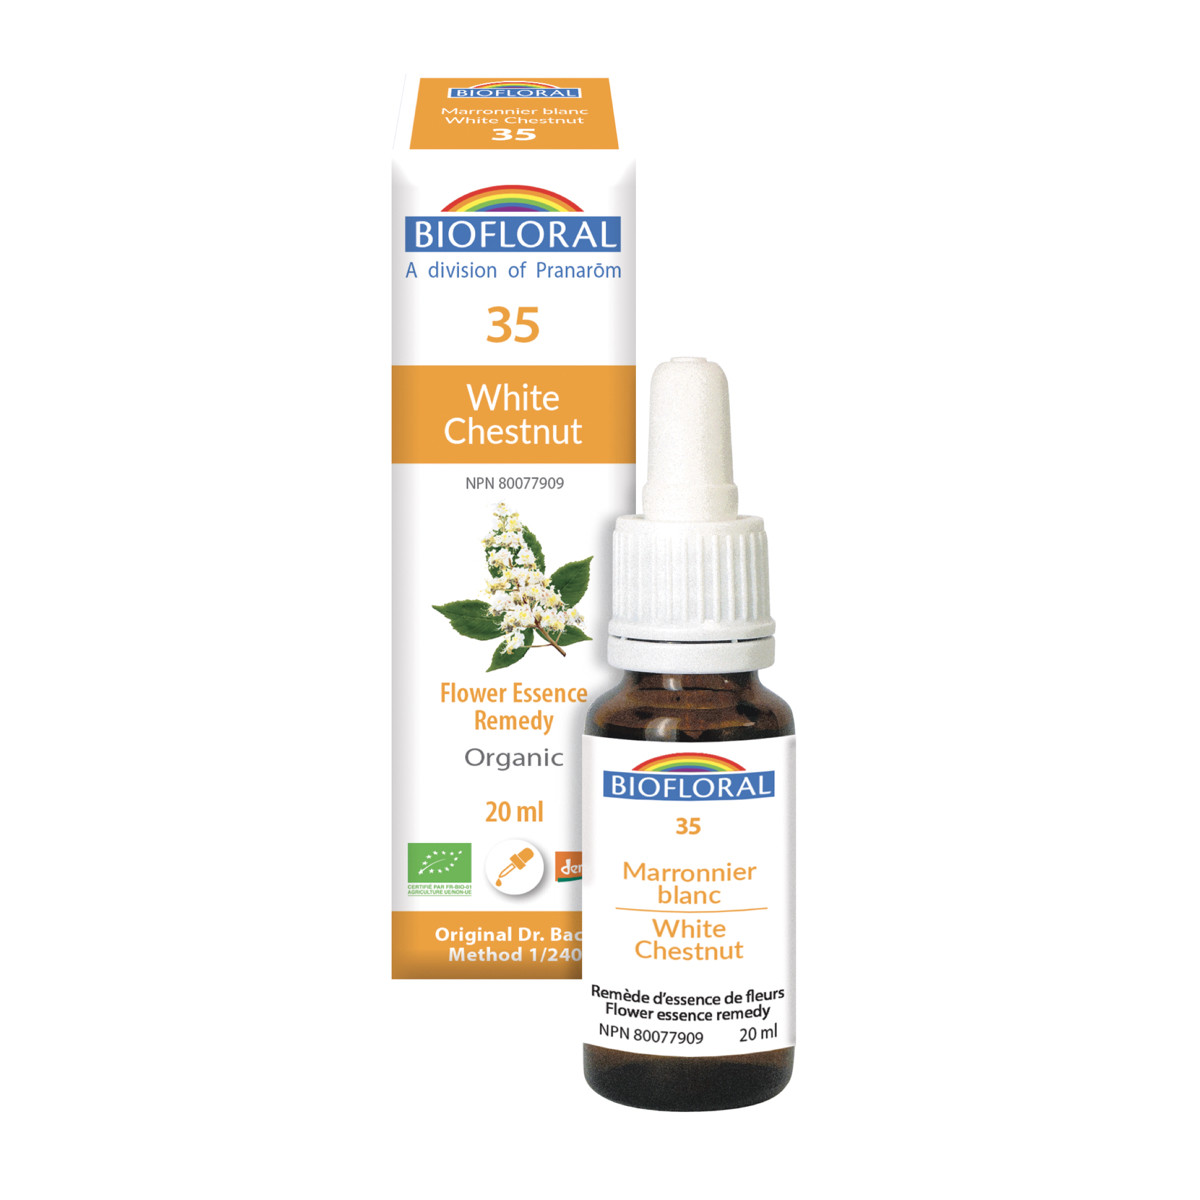 Biofloral No 35 White Chestnut Organic Flower Essence Remedy 20 Ml